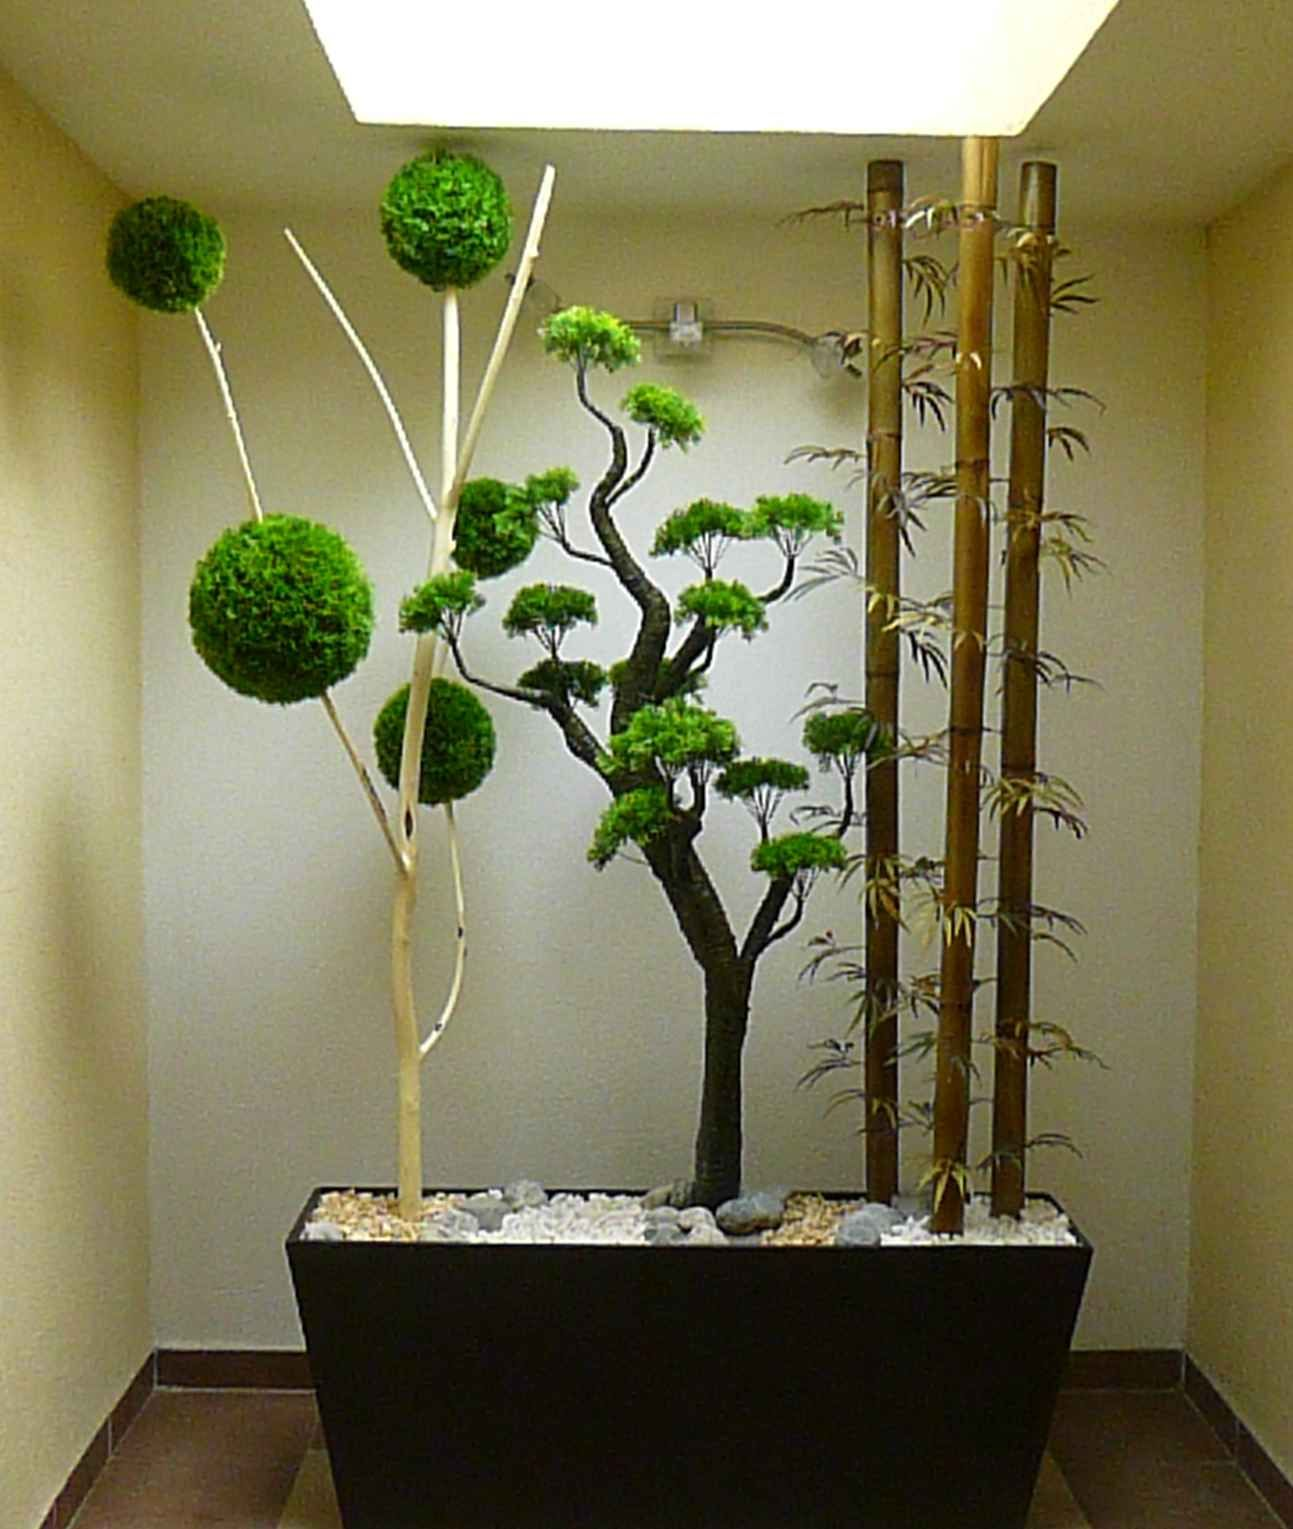 Jardinera horizontal con decoraci n de bonsai rbol de - Plantas artificiales para interiores ...